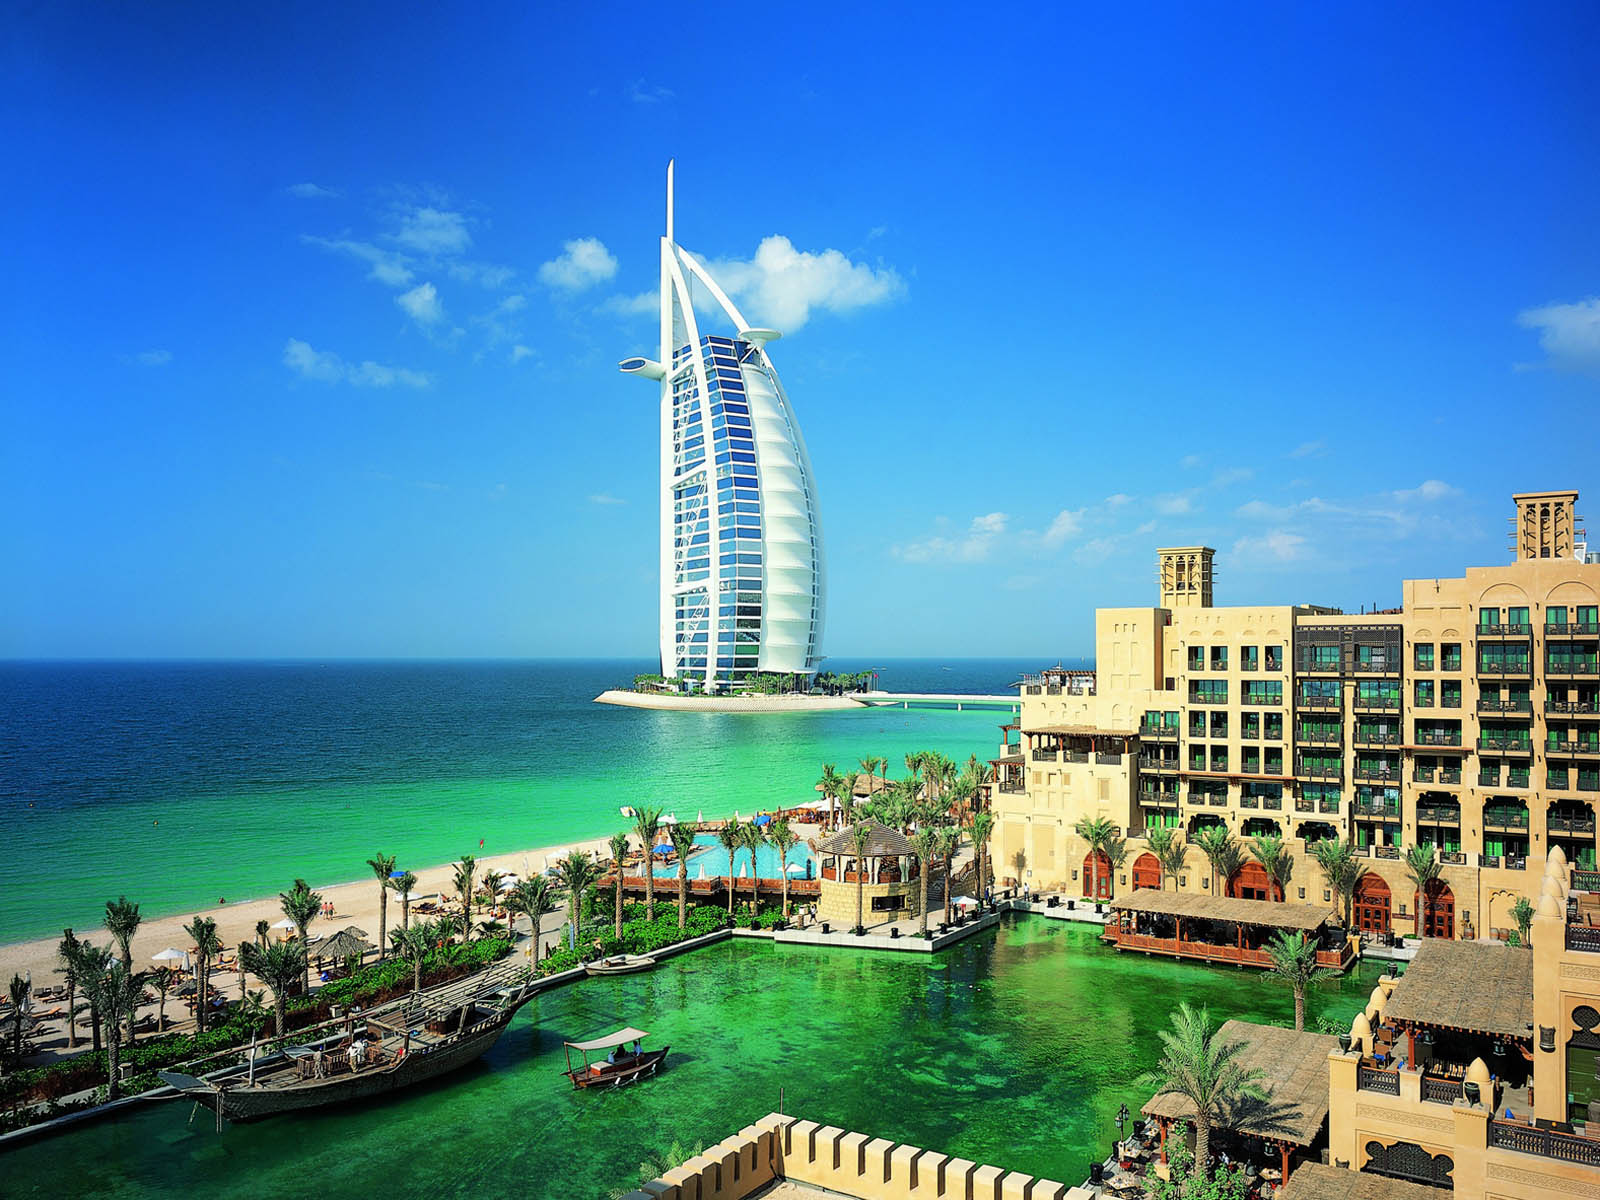 Tag Dubai Wallpapers Backgrounds Photos Images and Pictures for 1600x1200